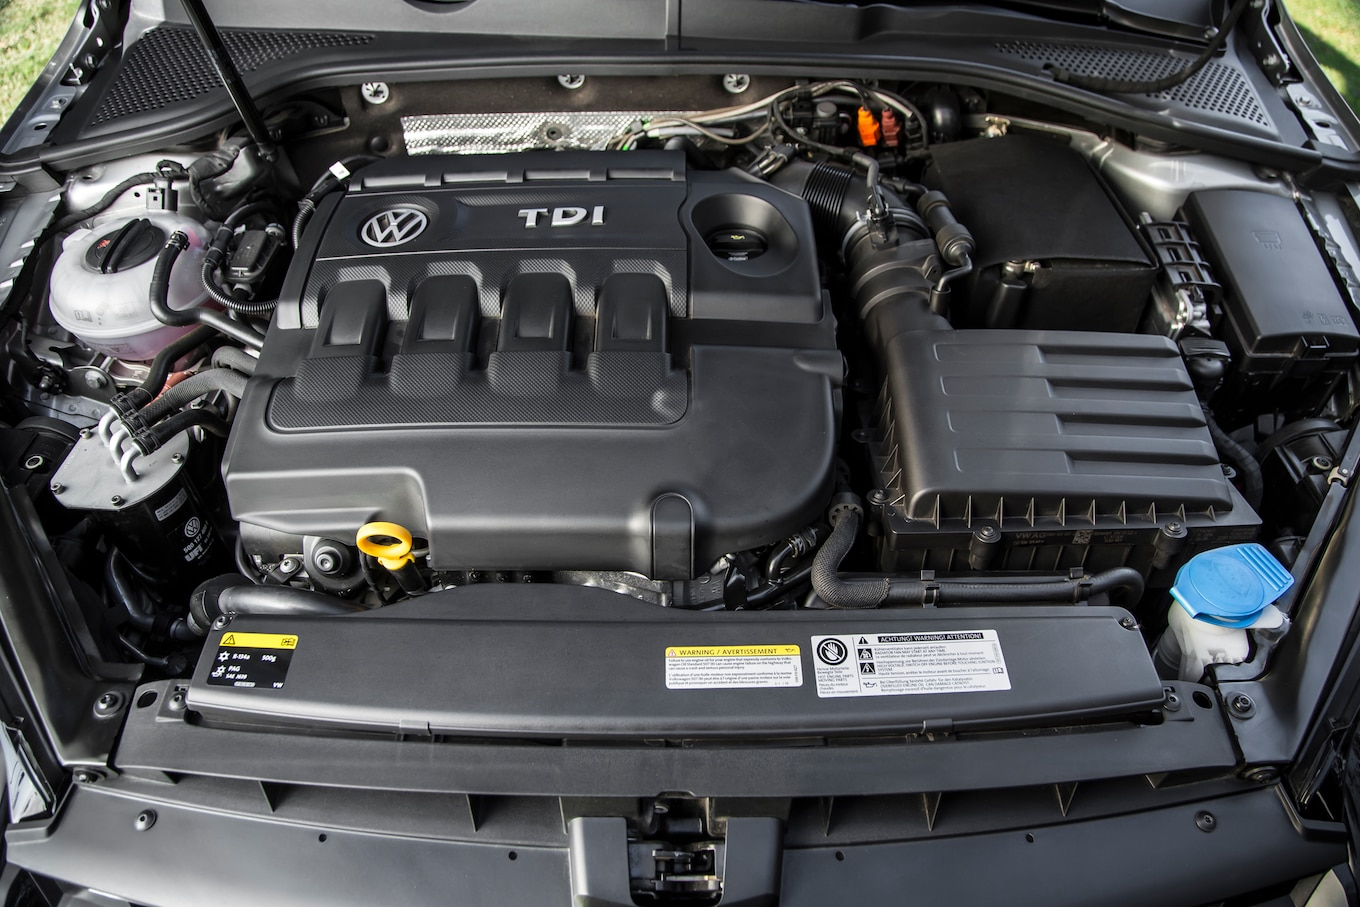 hight resolution of vw and audi tdi fuel injection systems 1996 present vw 2000 vw beetle engine diagram 2002